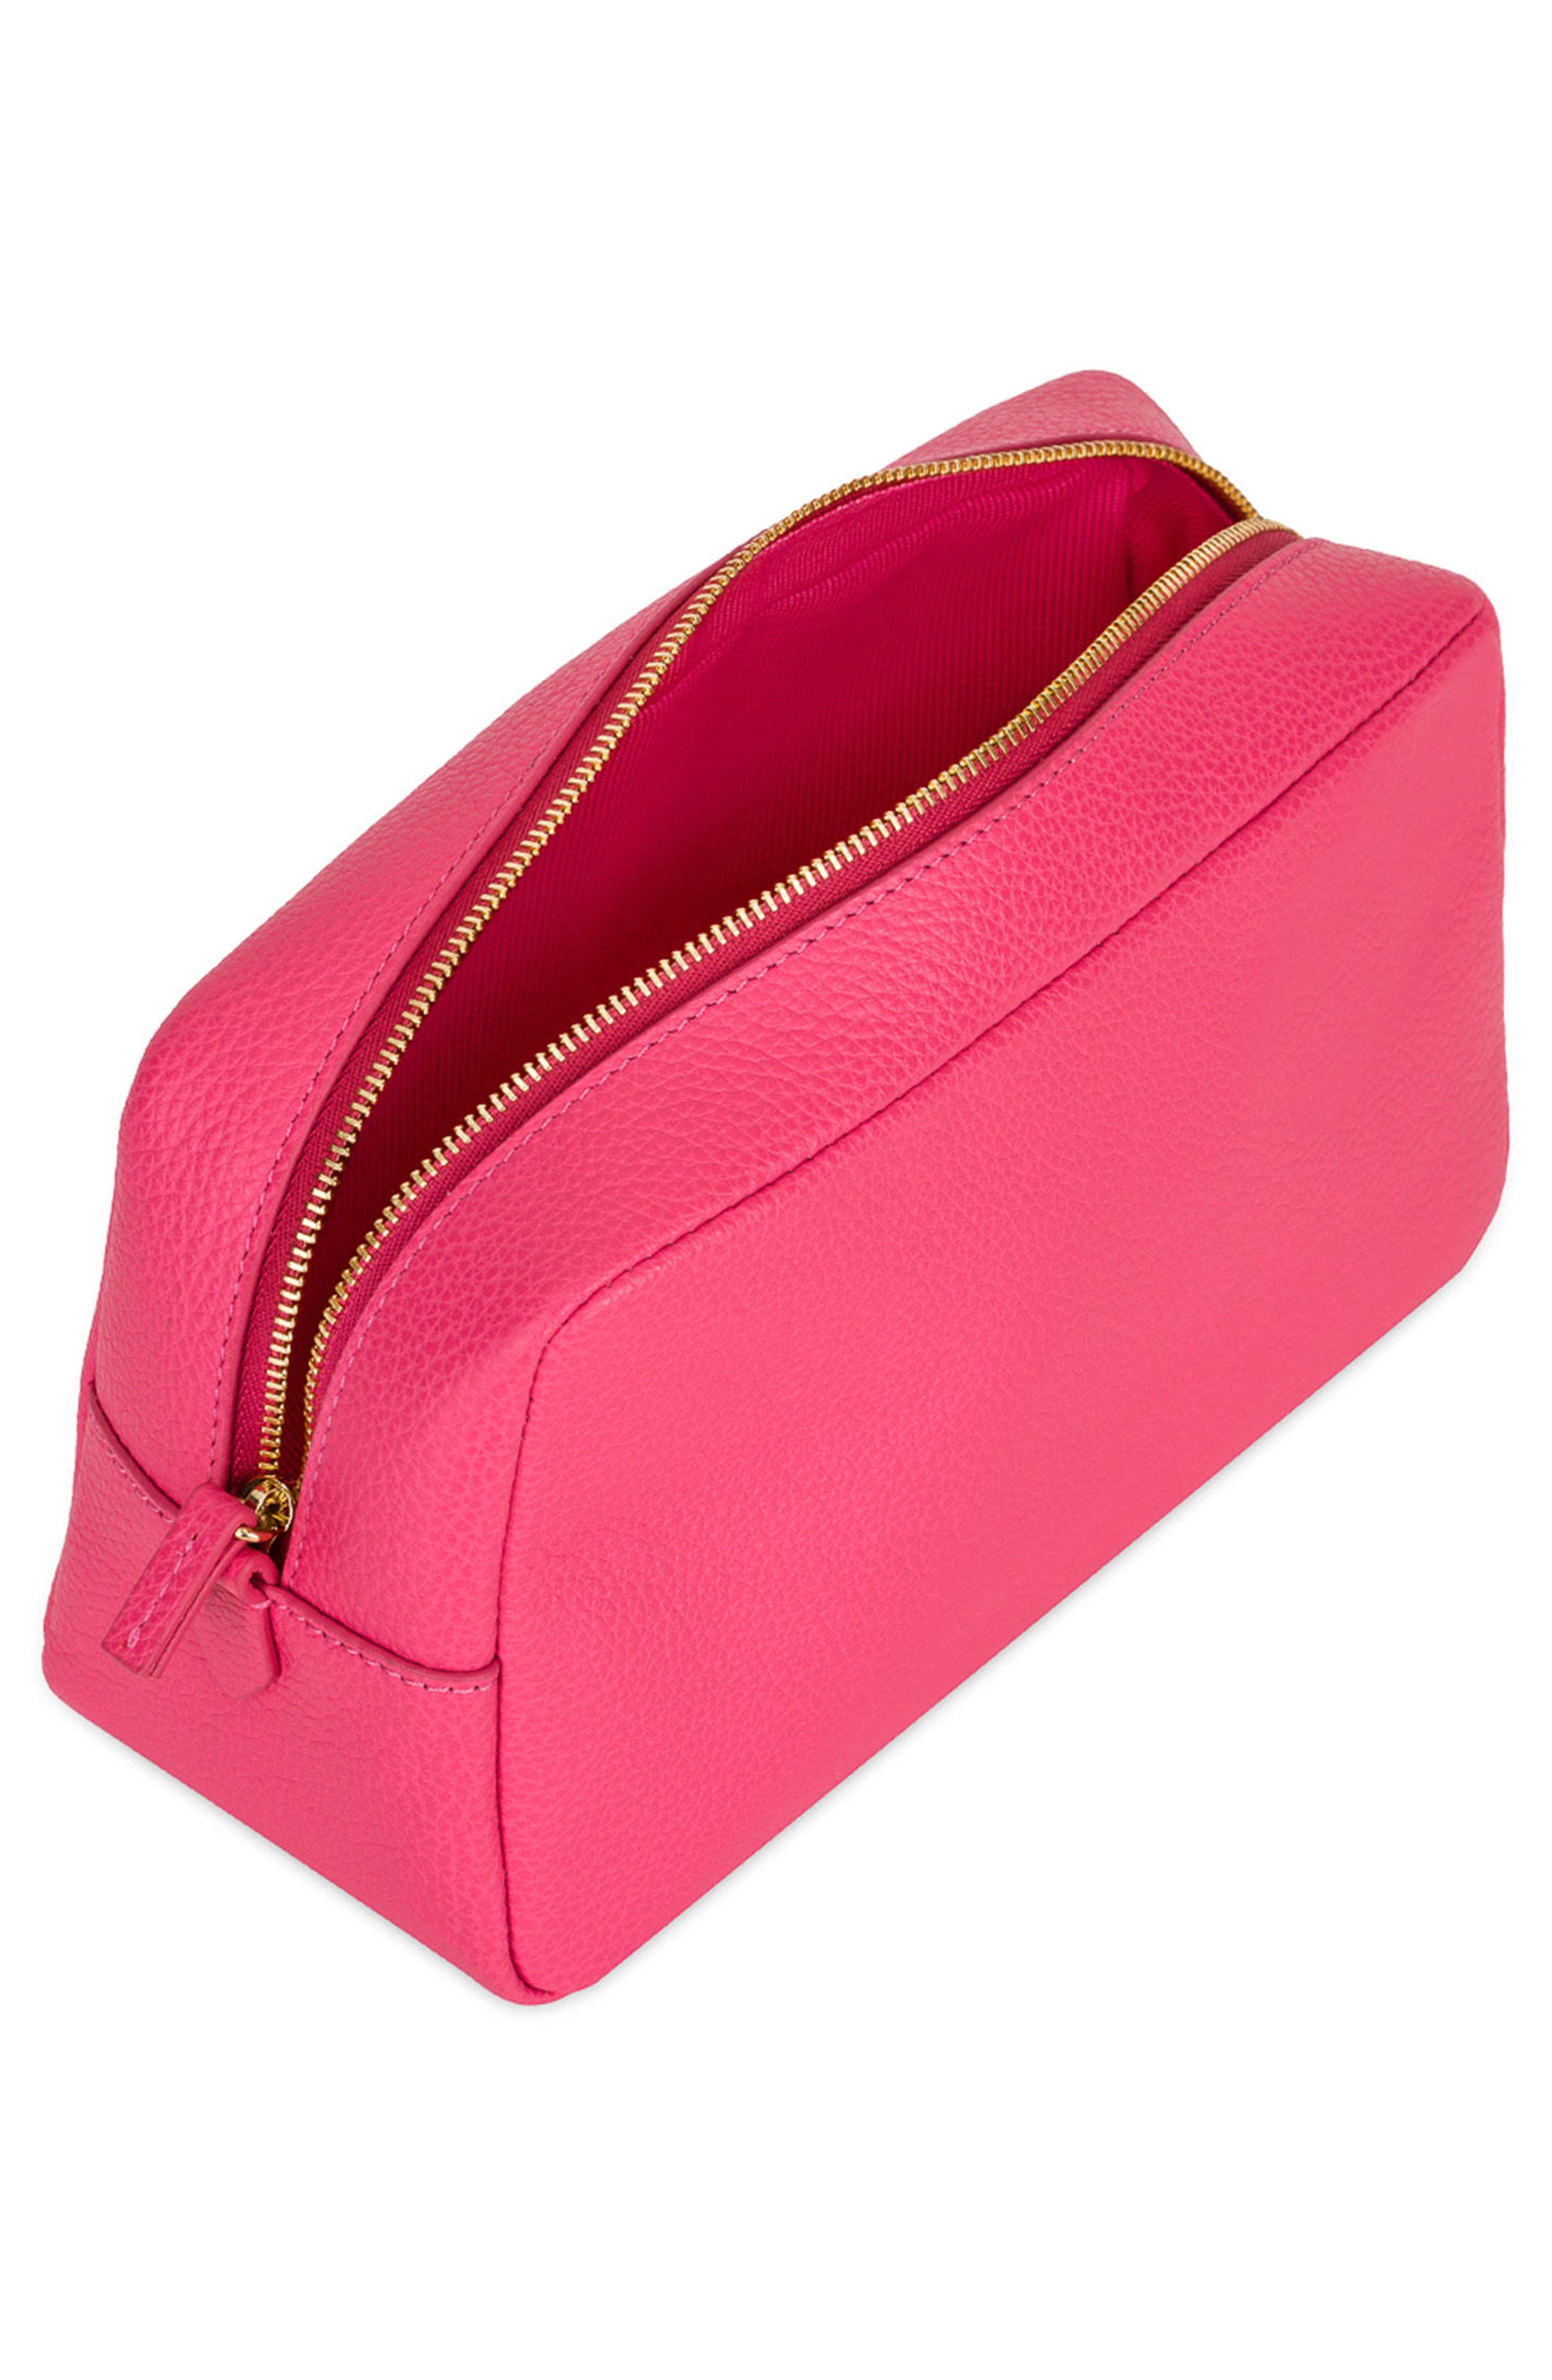 Bloom Extra Large Leather Cosmetic Bag,                             Alternate thumbnail 3, color,